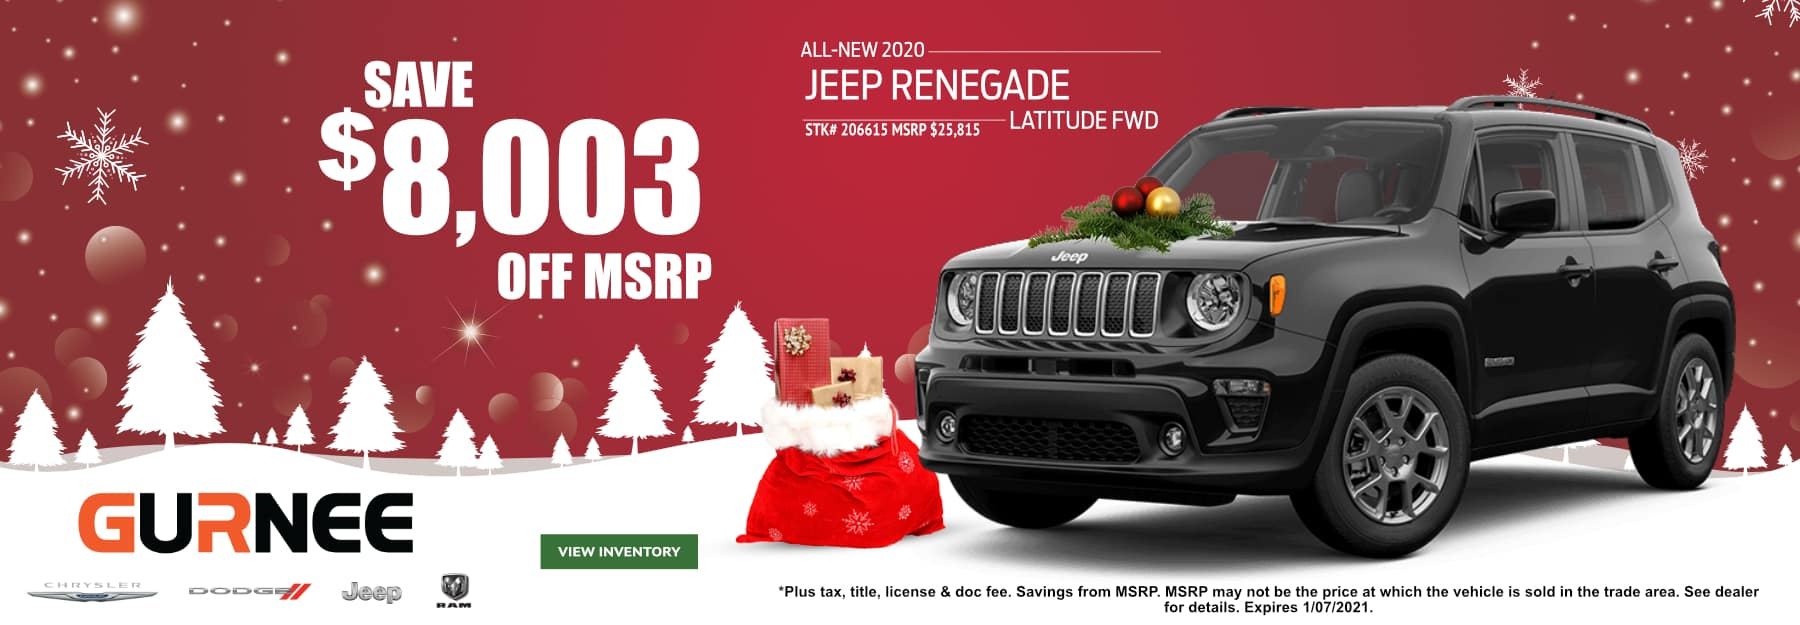 December-2020 Renegade_Gurnee